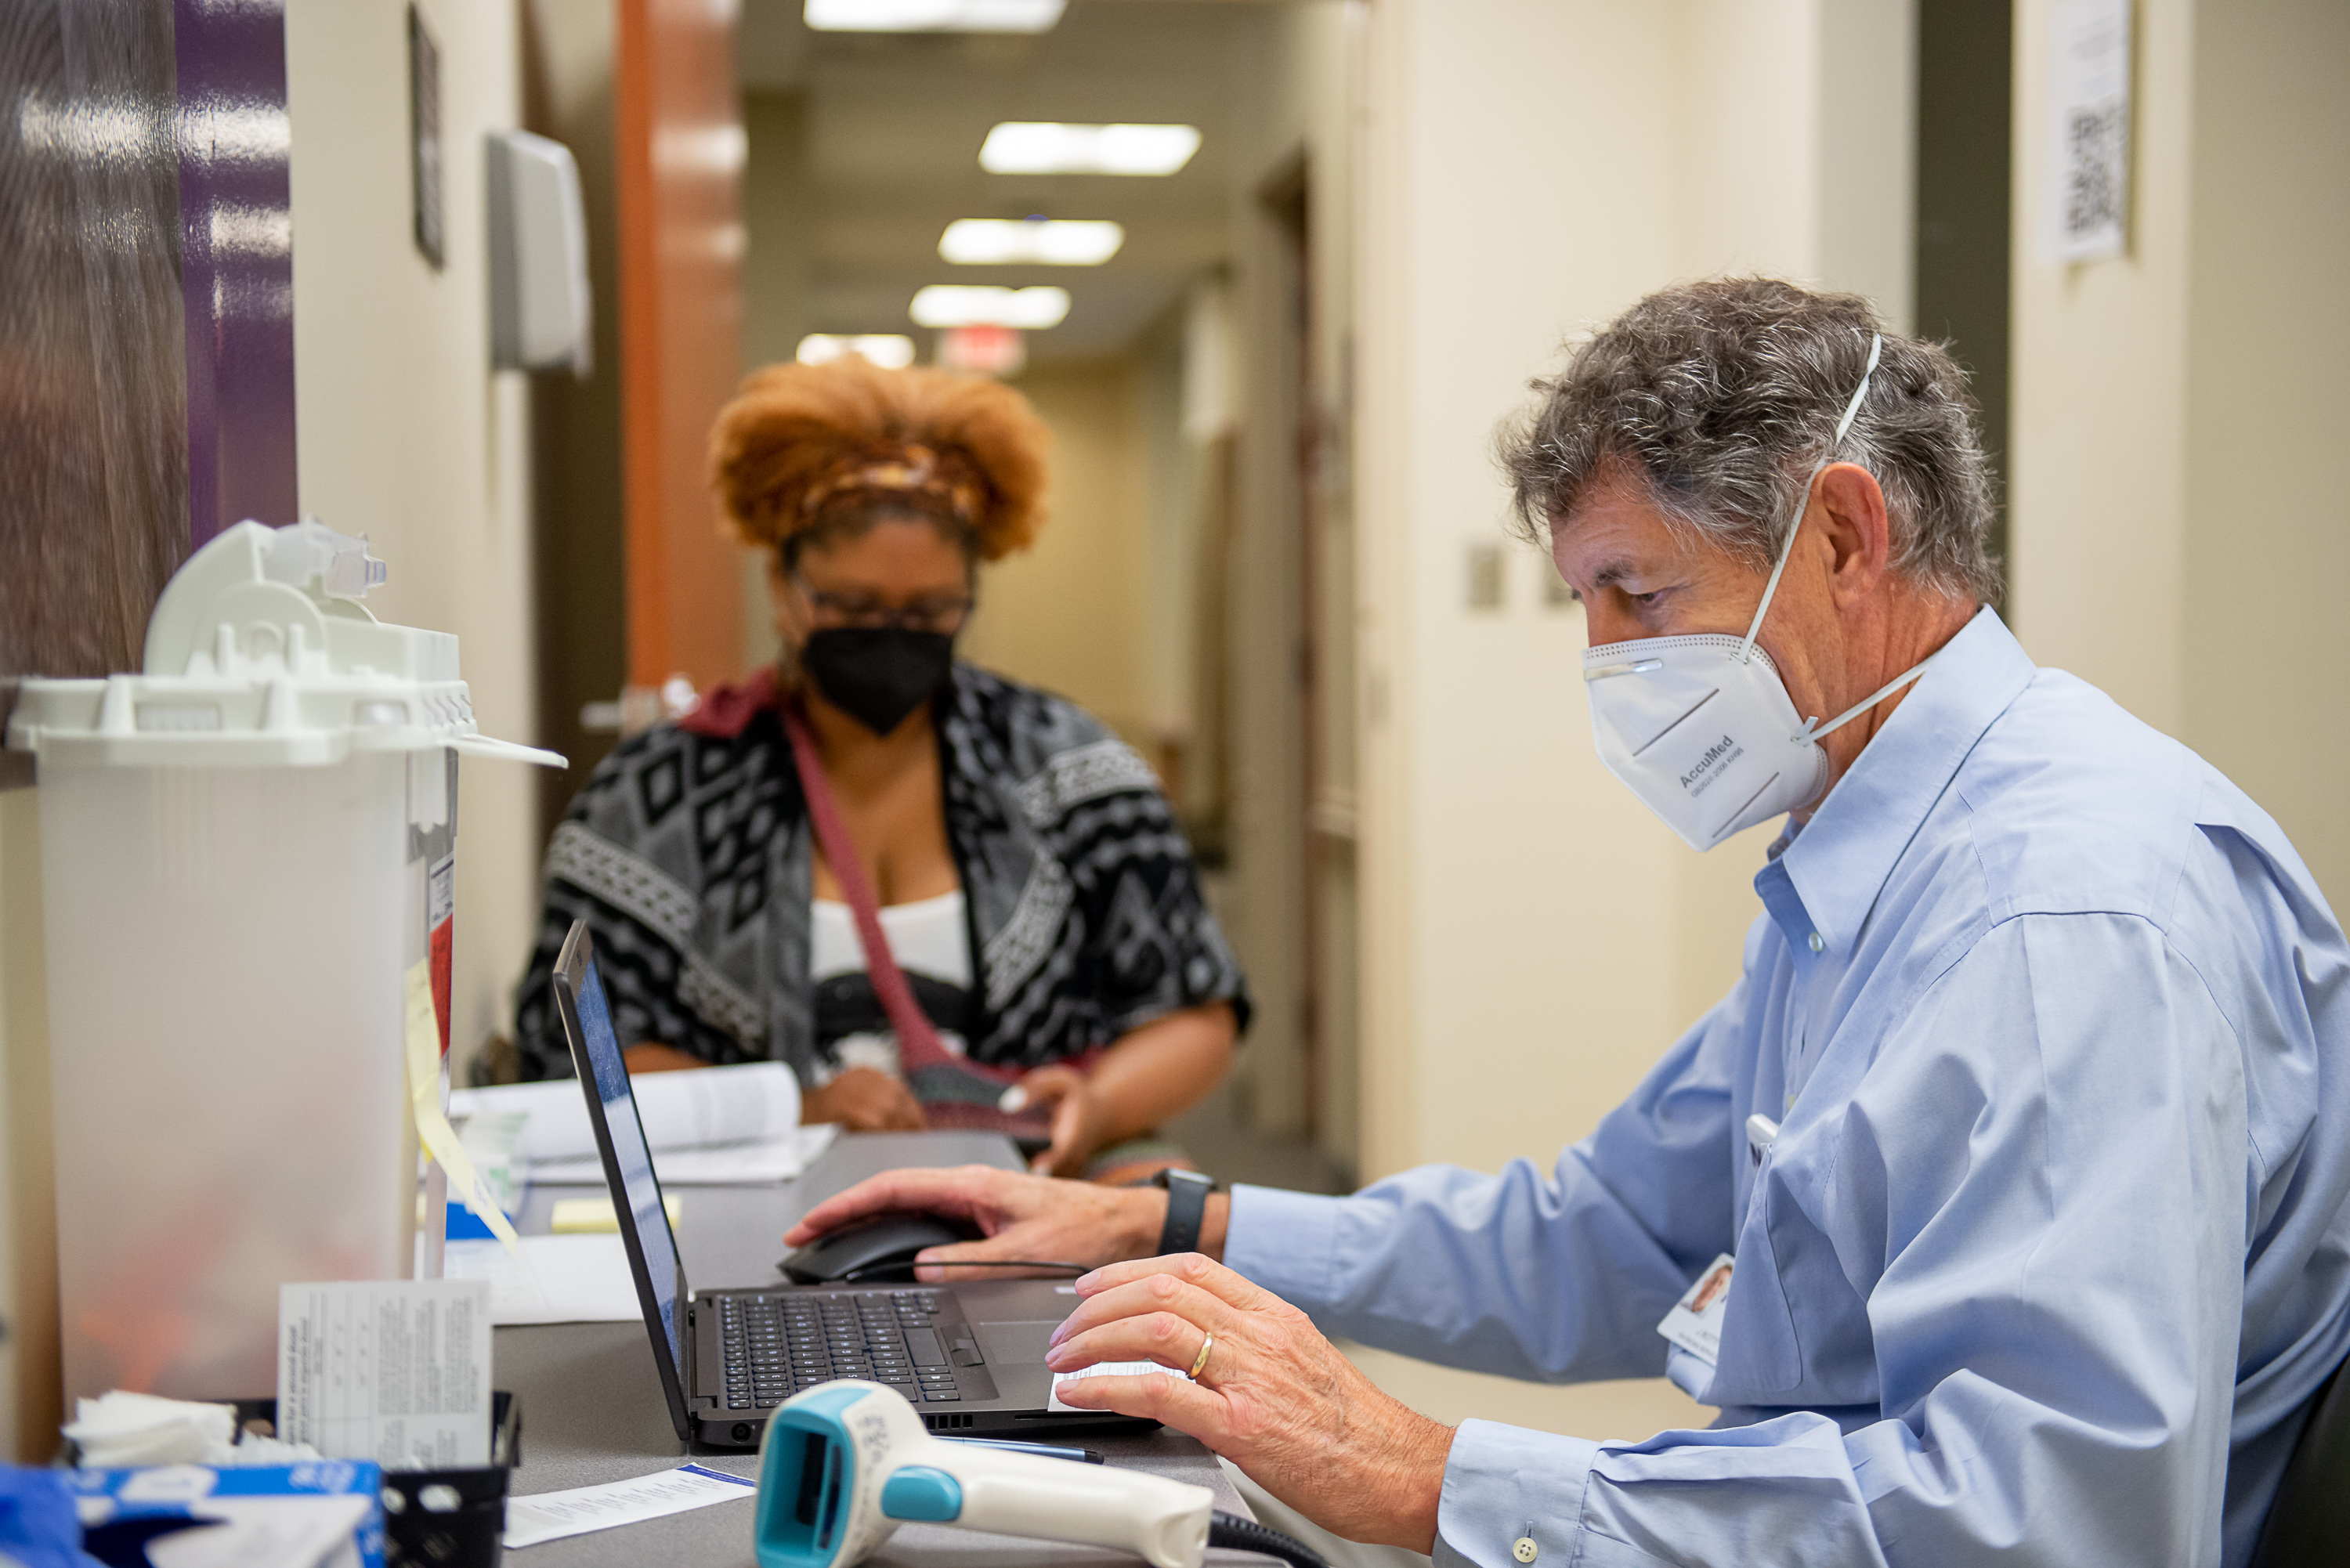 Dr. John Botti talks with a black woman before she gets the COVID-19 vaccination.